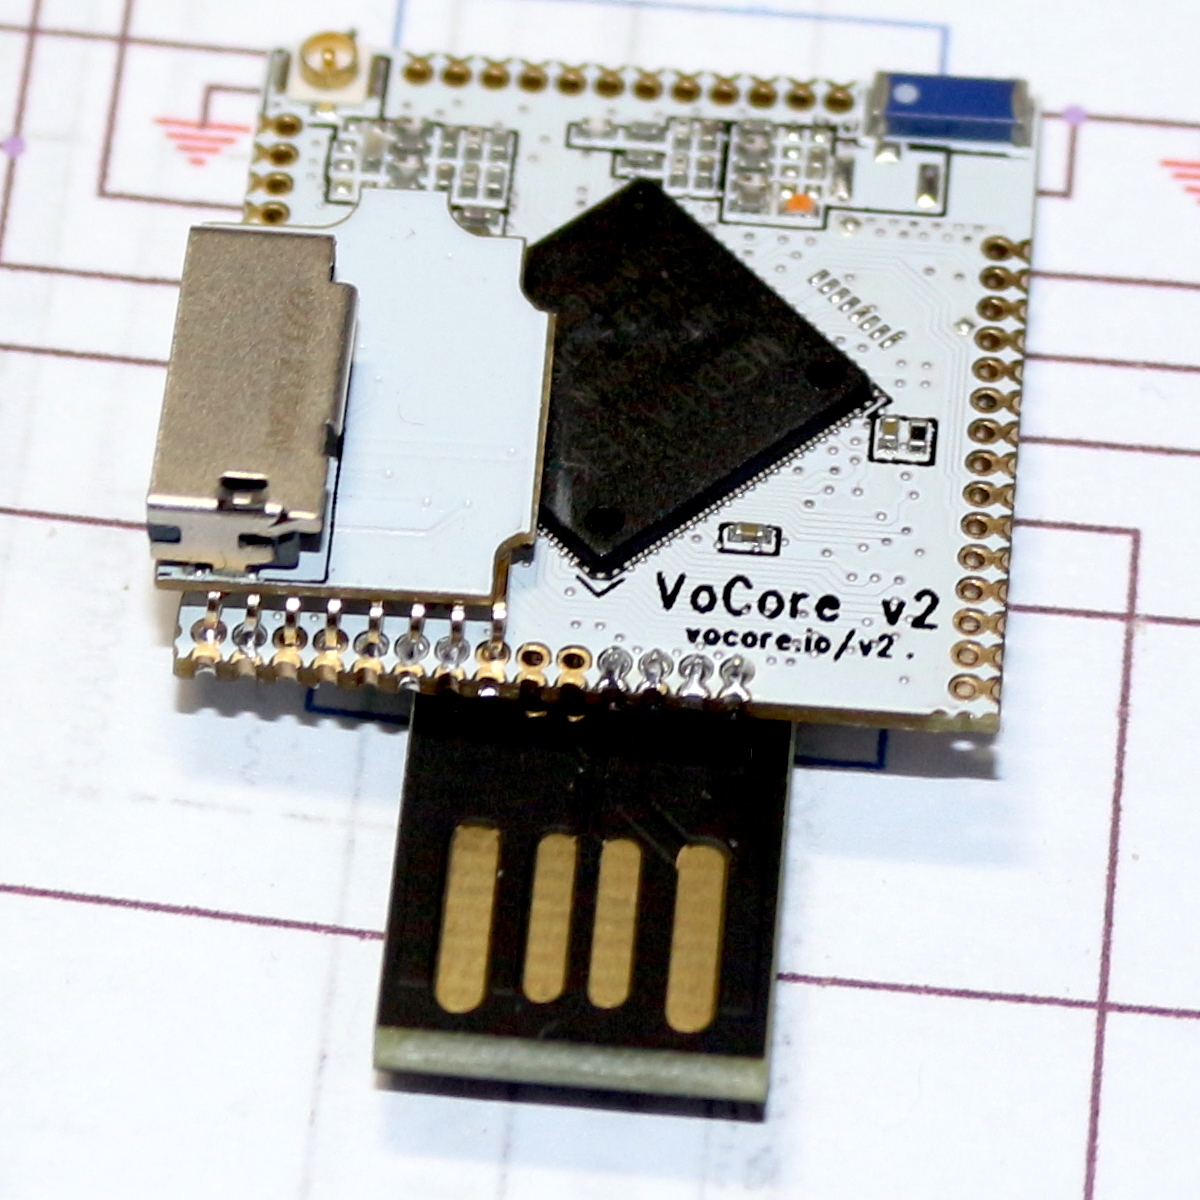 Vocore2 Coin Sized Linux Computer Usb To Wifi Adapter Circuit Diagram Datasheet Cross Reference Header Microsd